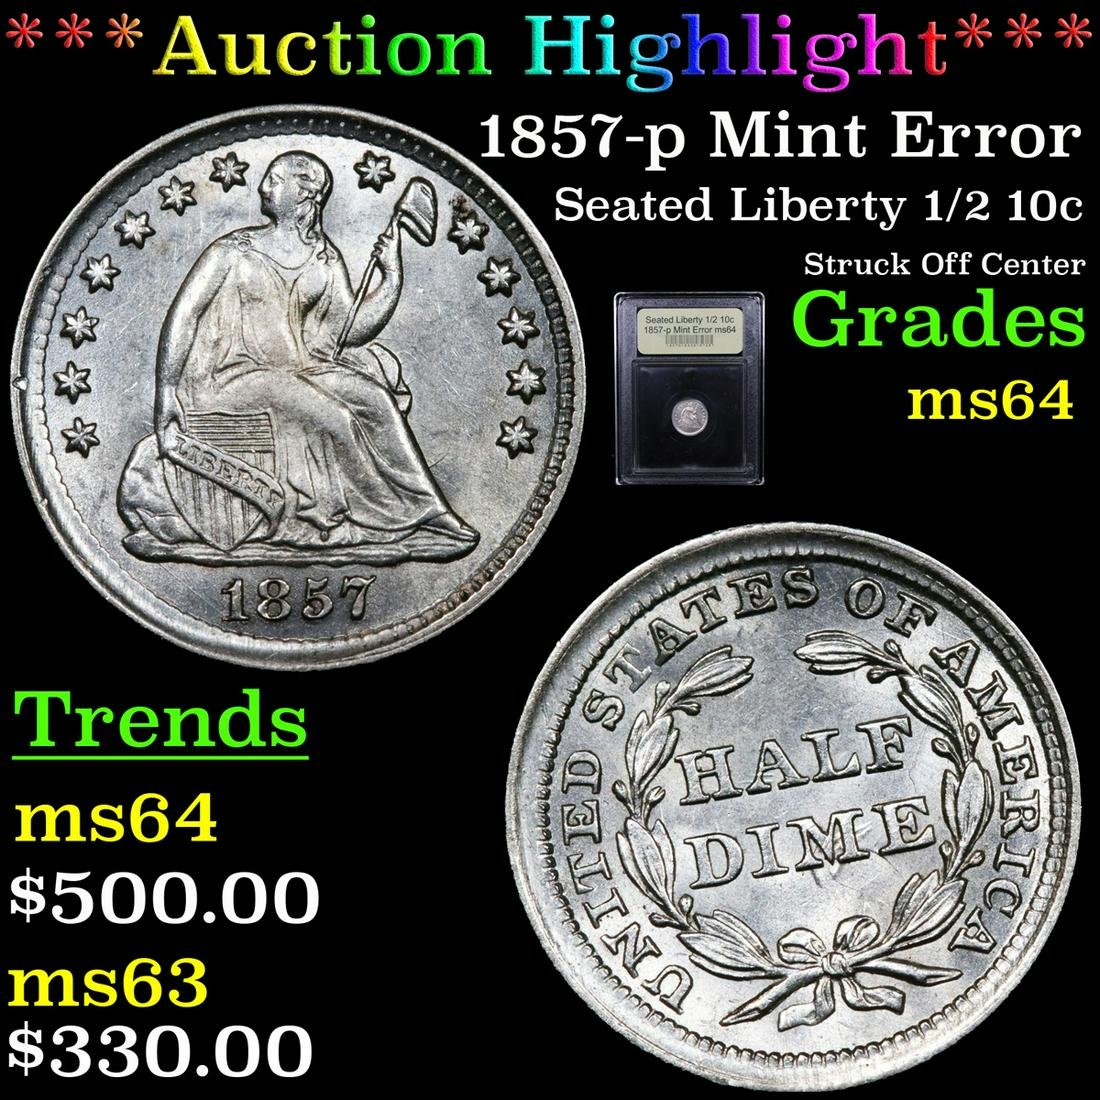 ***Auction Highlight*** 1857-p Mint Error Seated